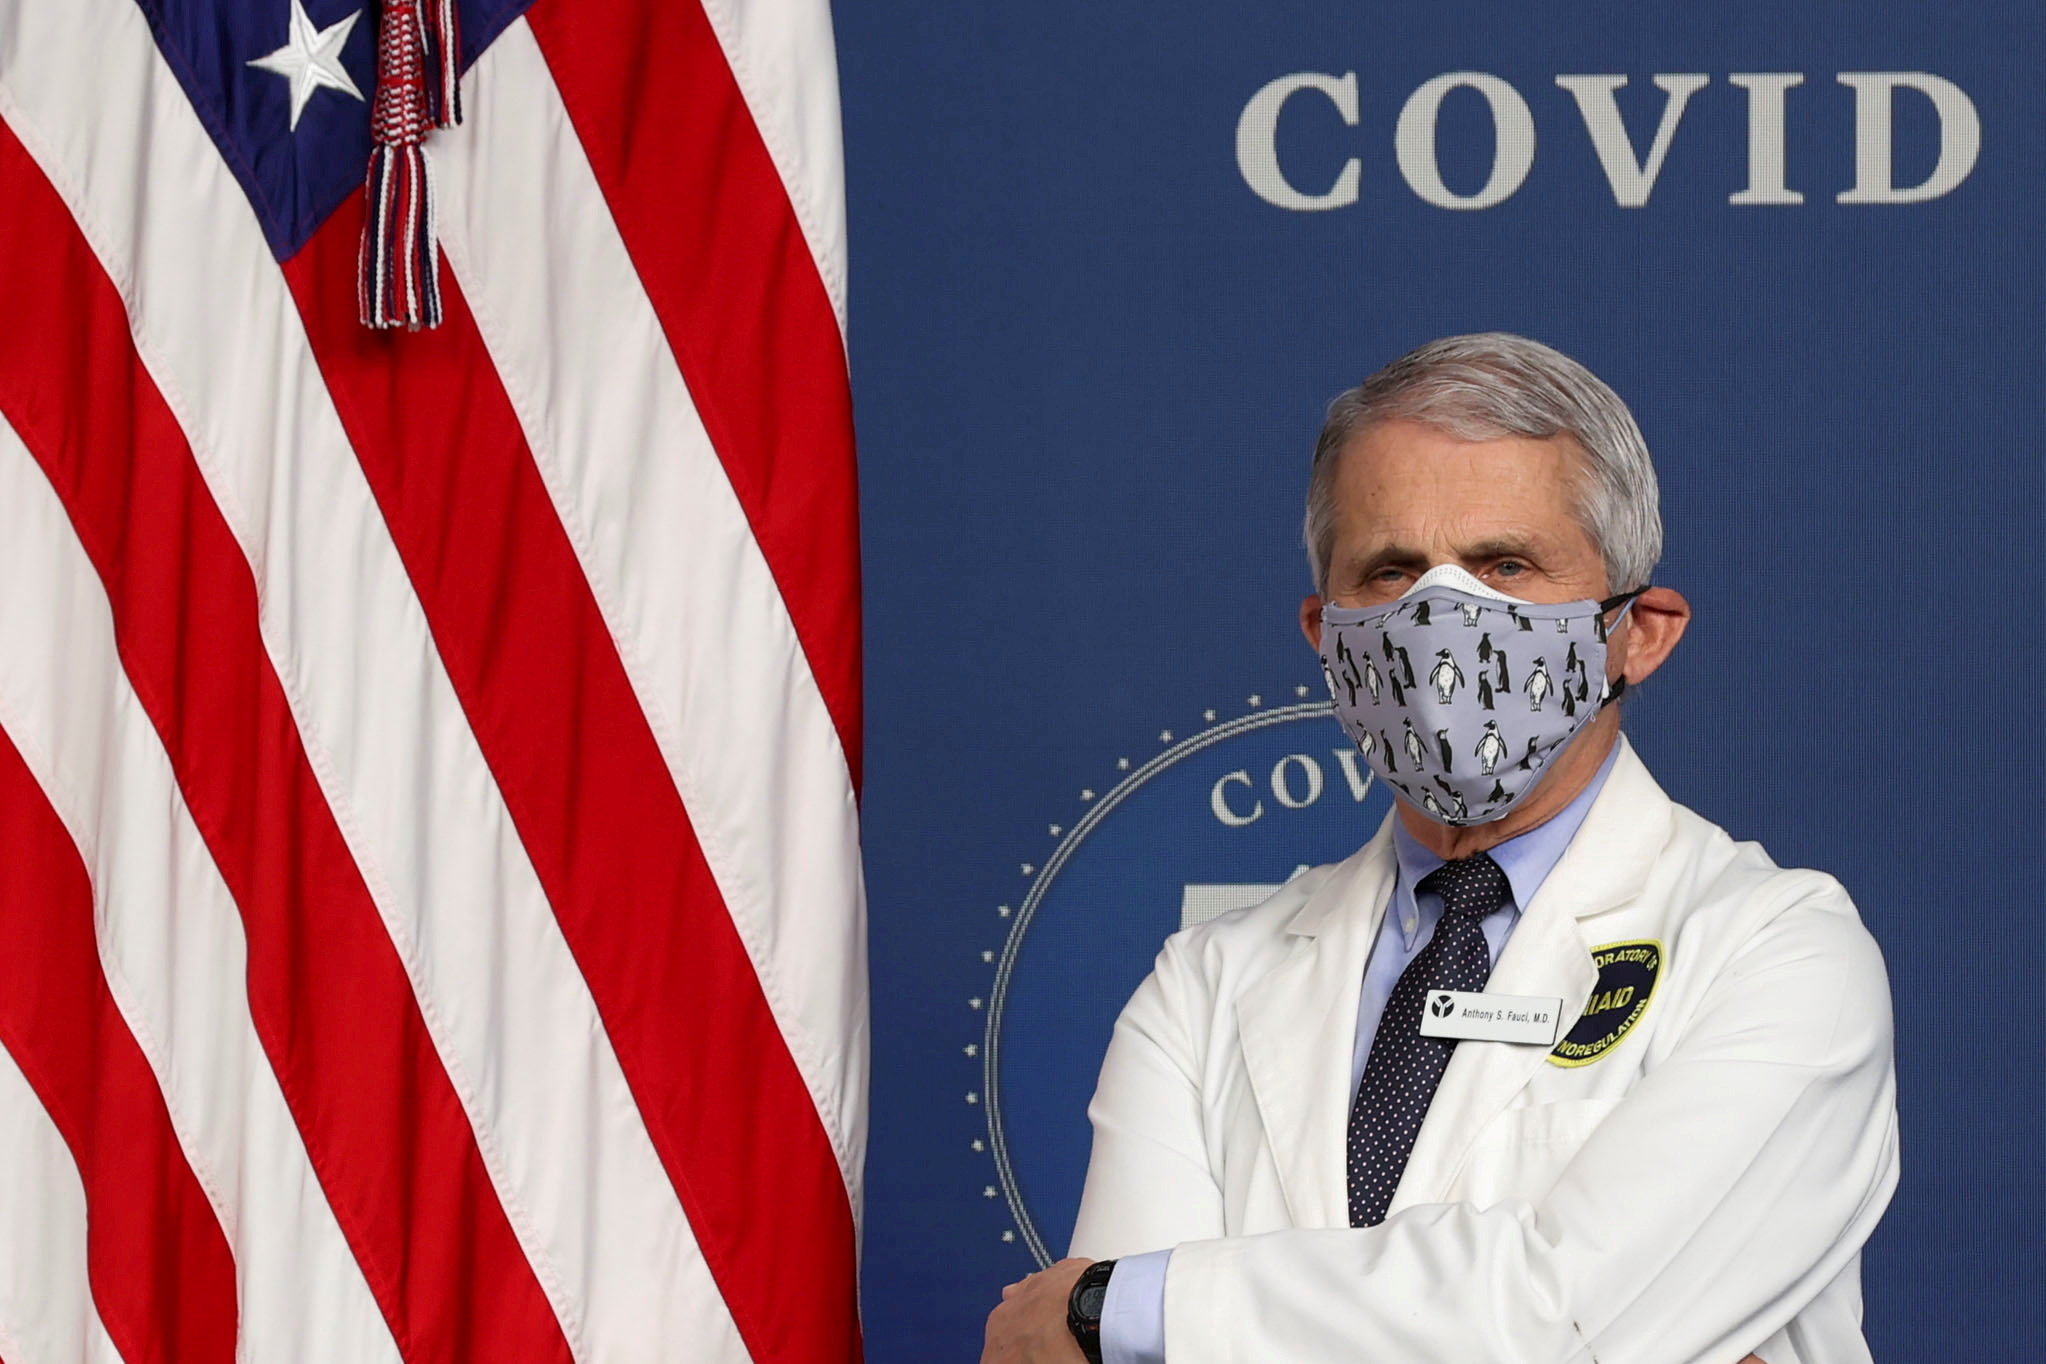 National Institute of Allergy and Infectious Diseases Director Dr. Anthony Fauci  stands by during an event to commemorate the 50 millionth coronavirus disease (COVID-19) vaccination in the South Court Auditorium at the White House in Washington, U.S., February 25, 2021. REUTERS/Jonathan Ernst/File Photo